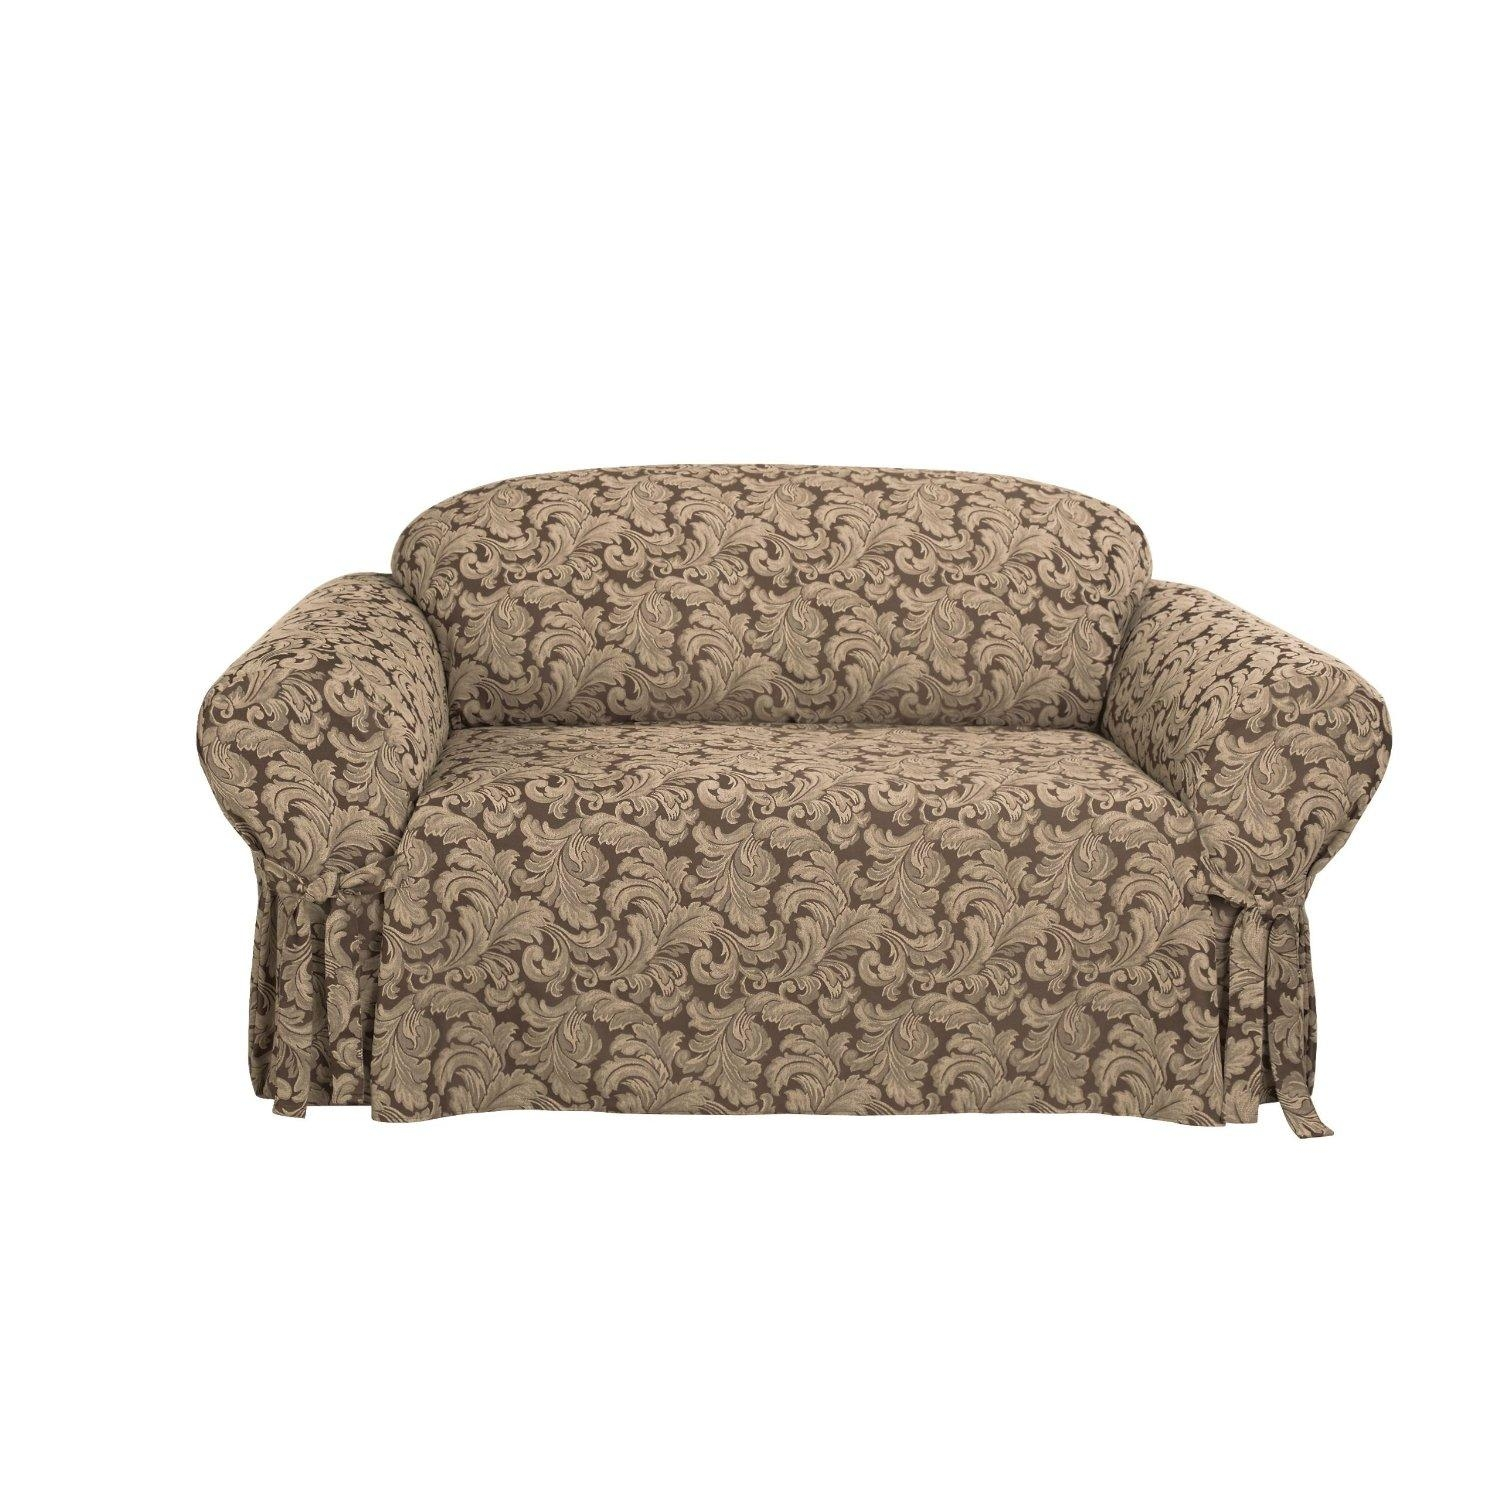 Patterned Sofa Slipcovers | Sofa Gallery | Kengire Inside Patterned Sofa Slipcovers (Image 15 of 20)